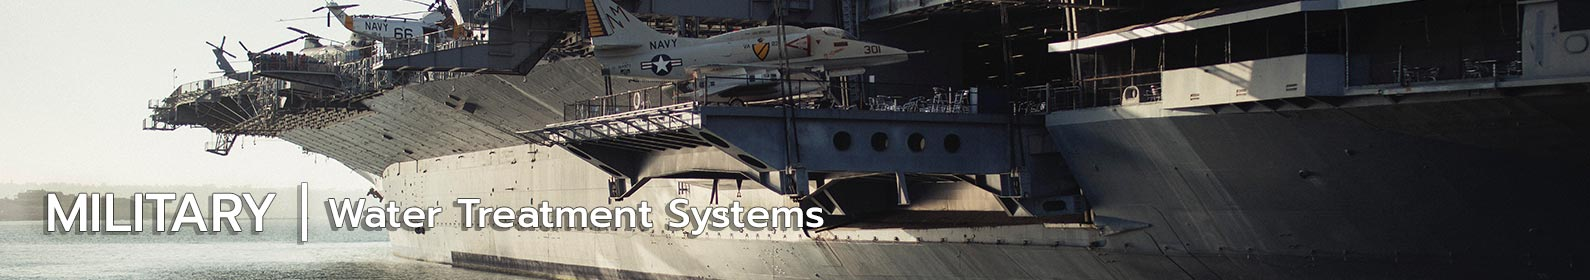 water treatment systems for military industry